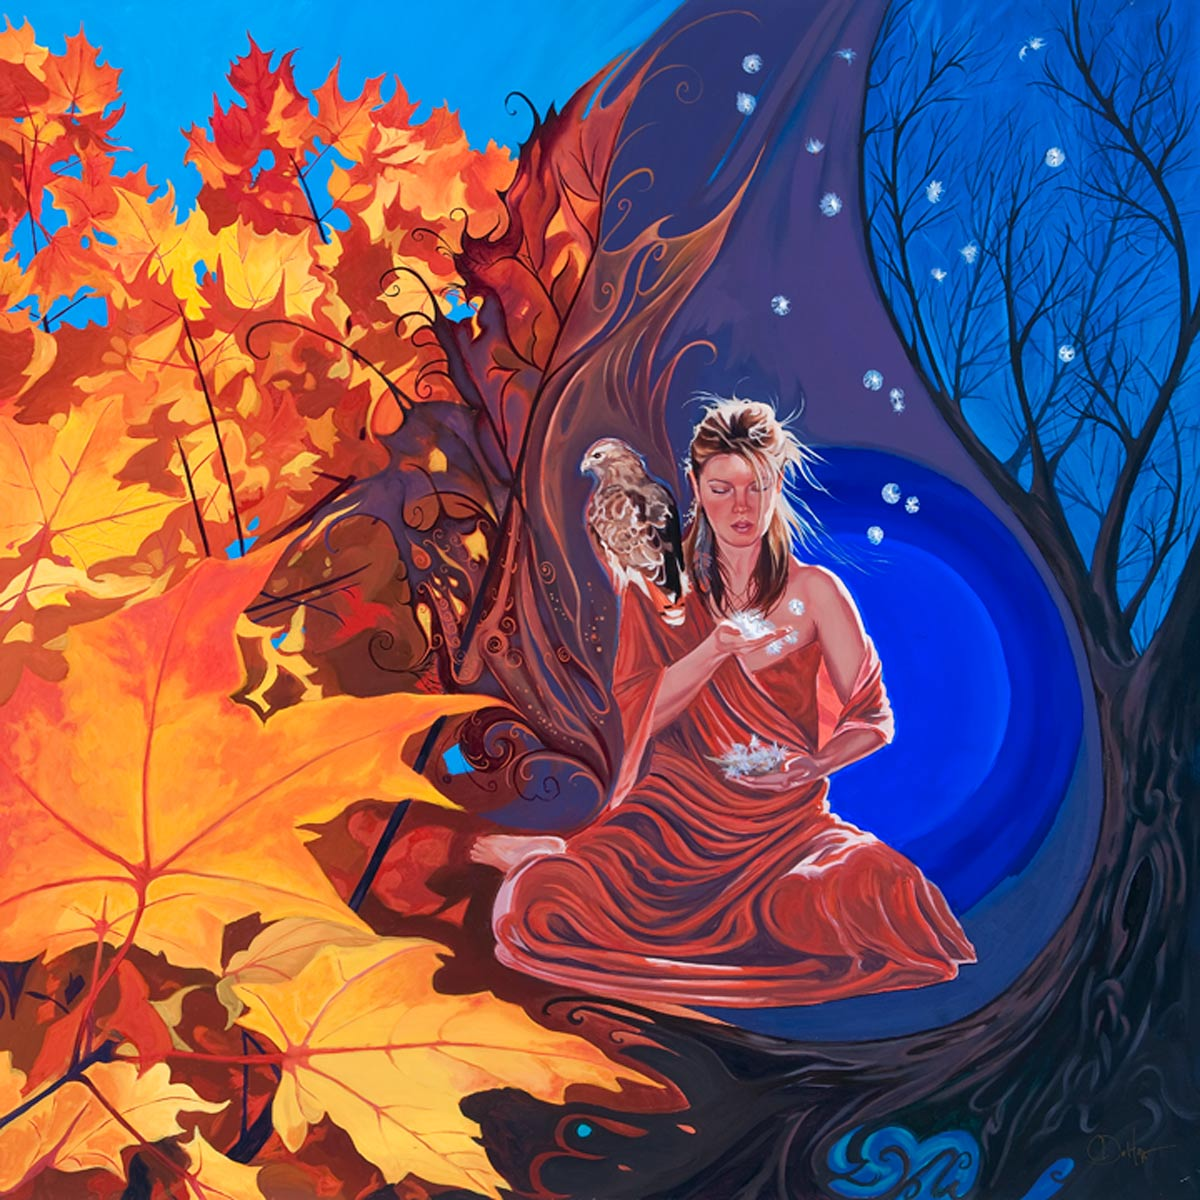 christina-dehoff-prayers-into-the-wind-autumn-equinox